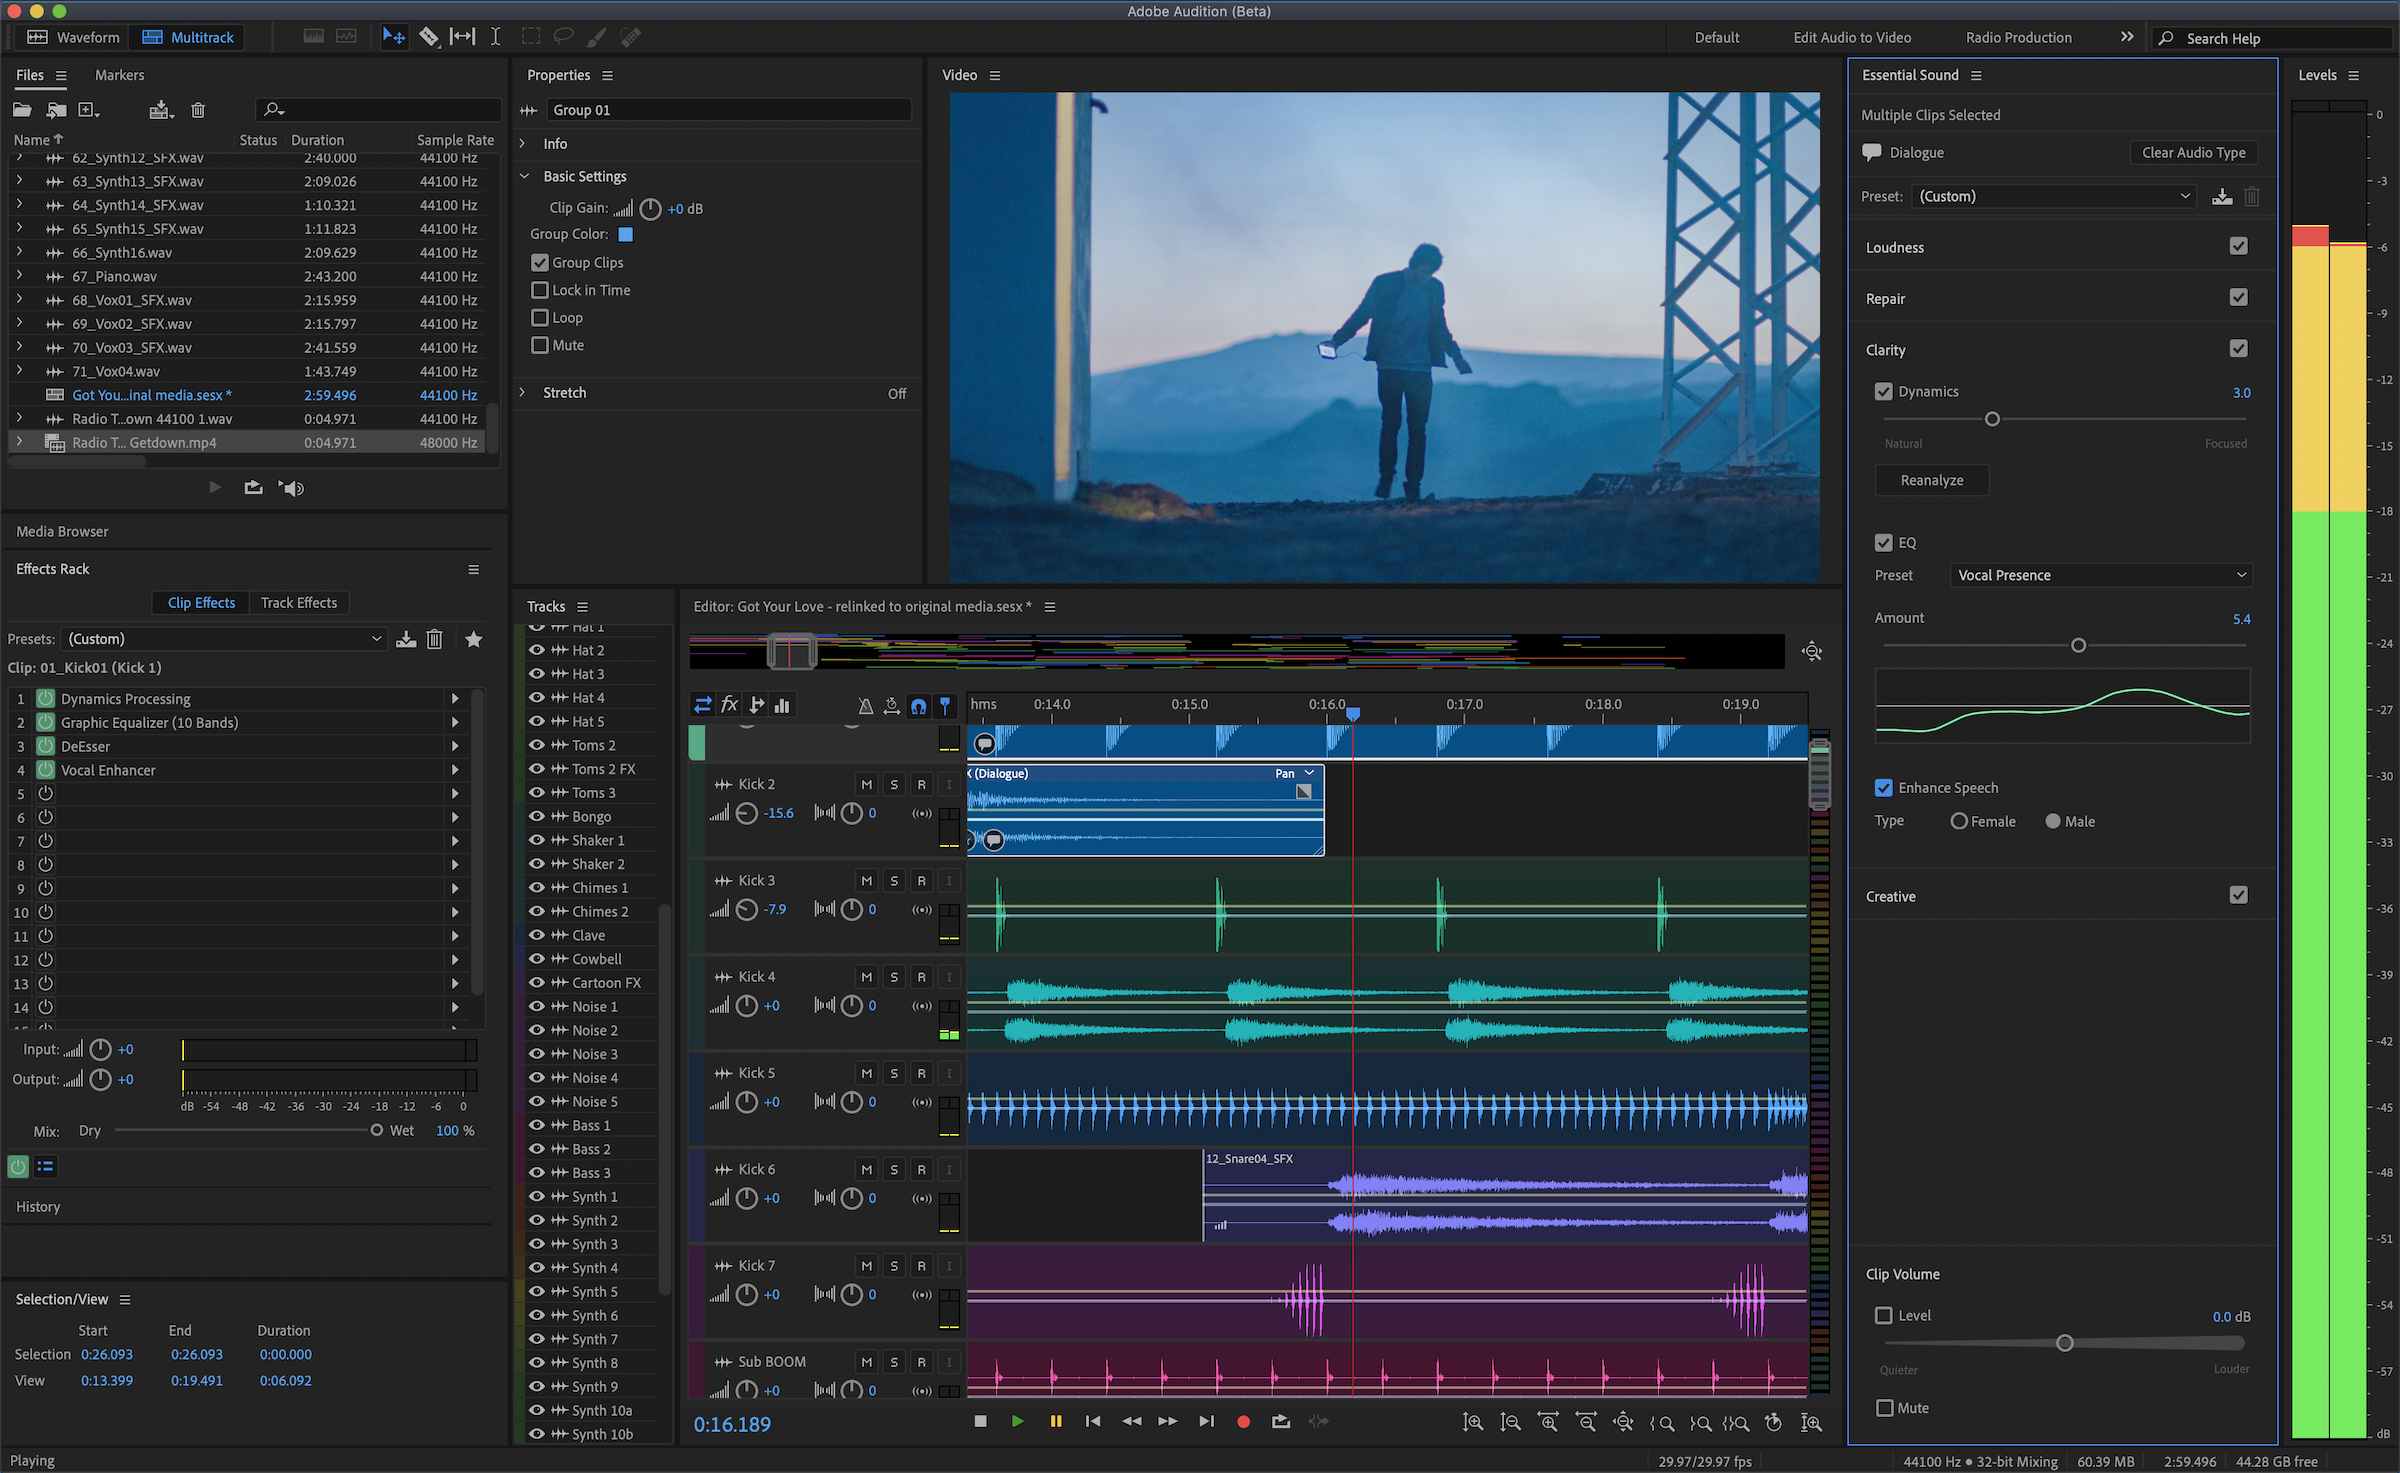 The November 2019 release of Adobe Premiere Pro and the other Adobe Video Apps is here 40